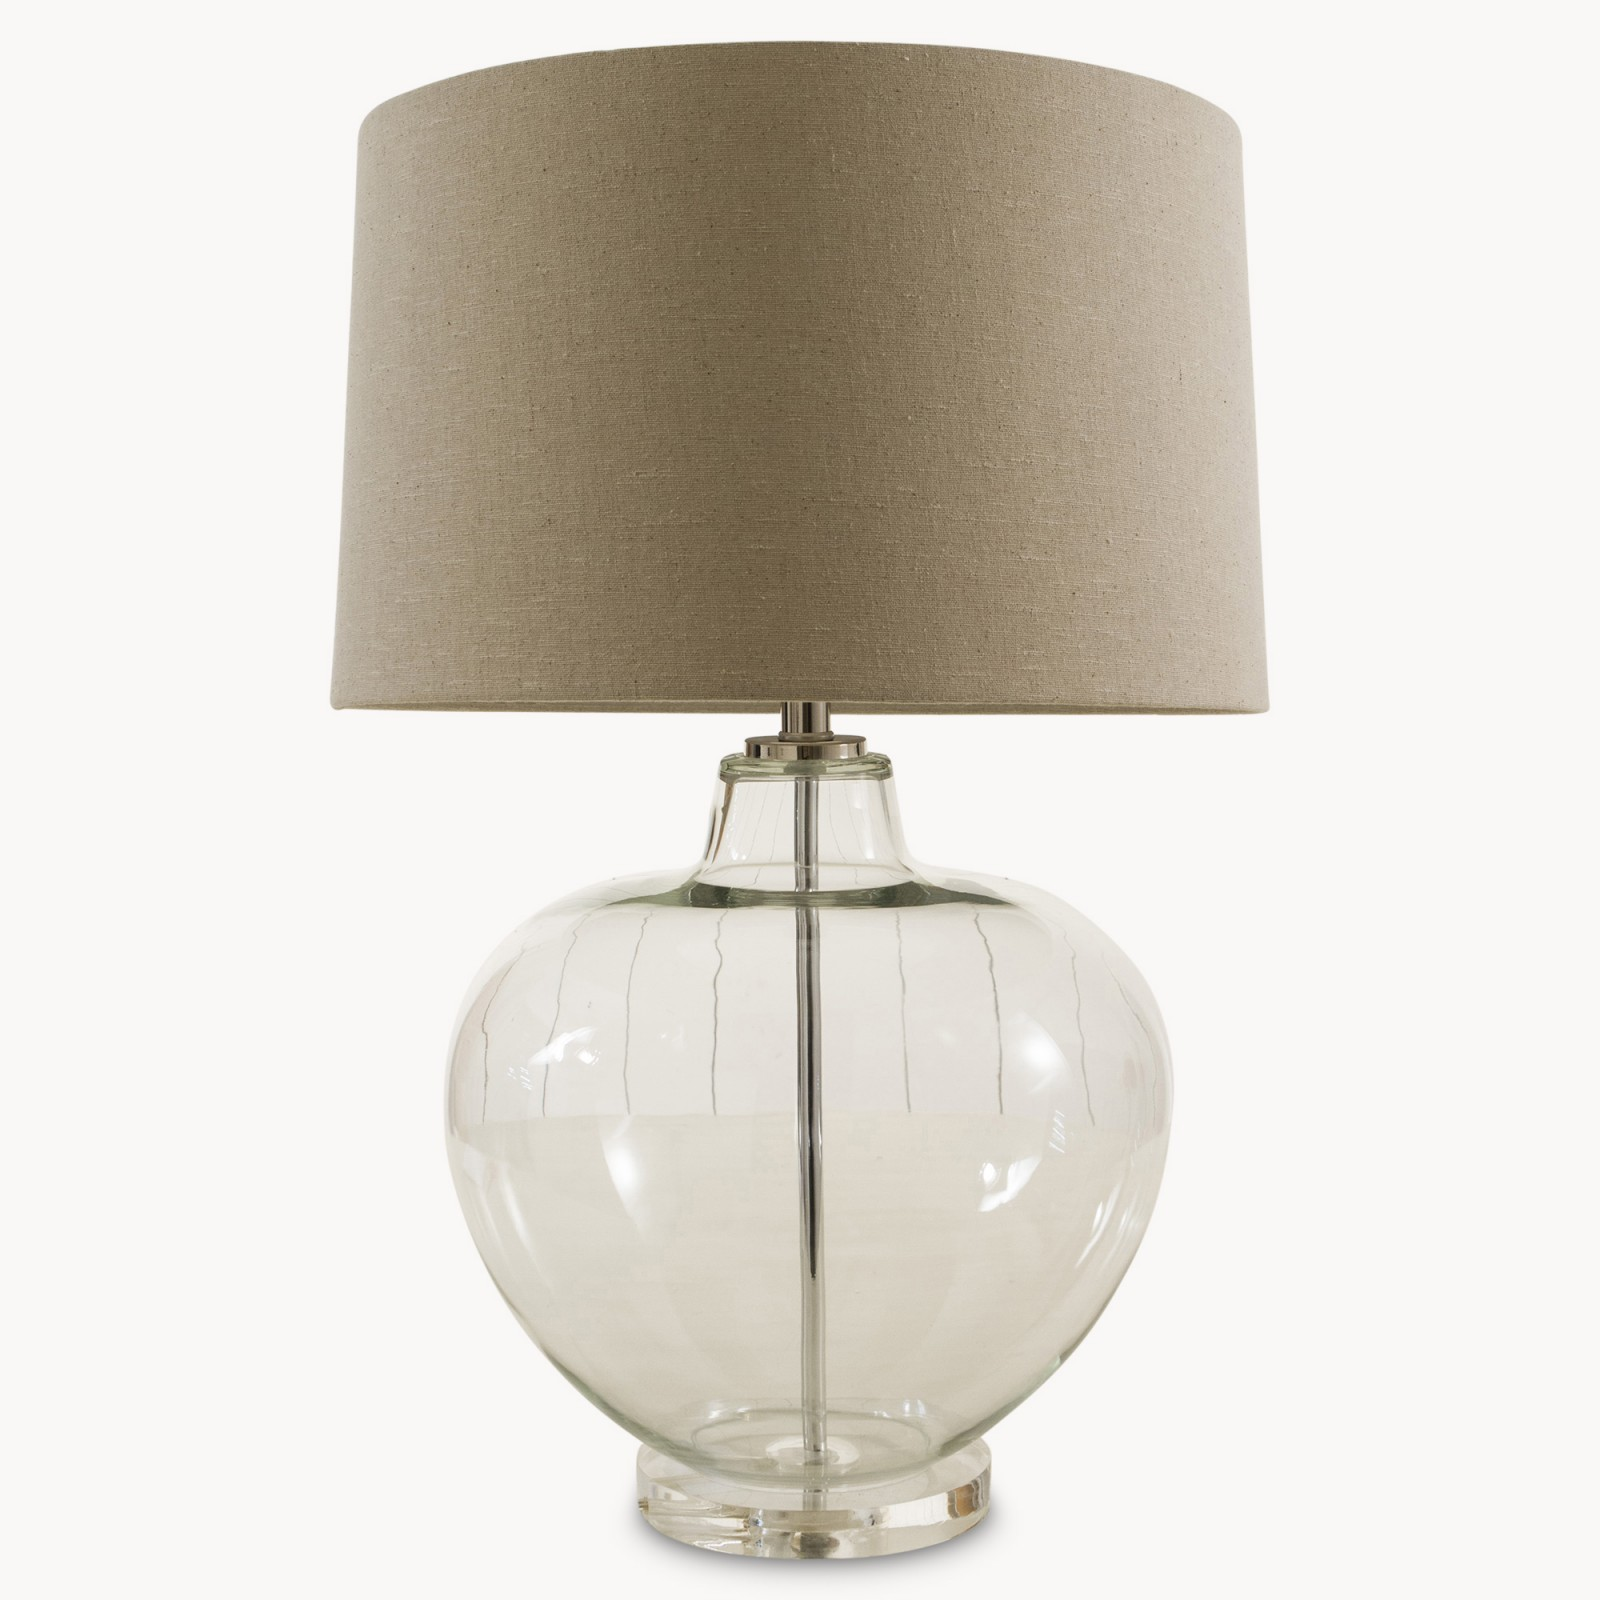 clear glass ball table lamp 20 off woodcocks interiors. Black Bedroom Furniture Sets. Home Design Ideas